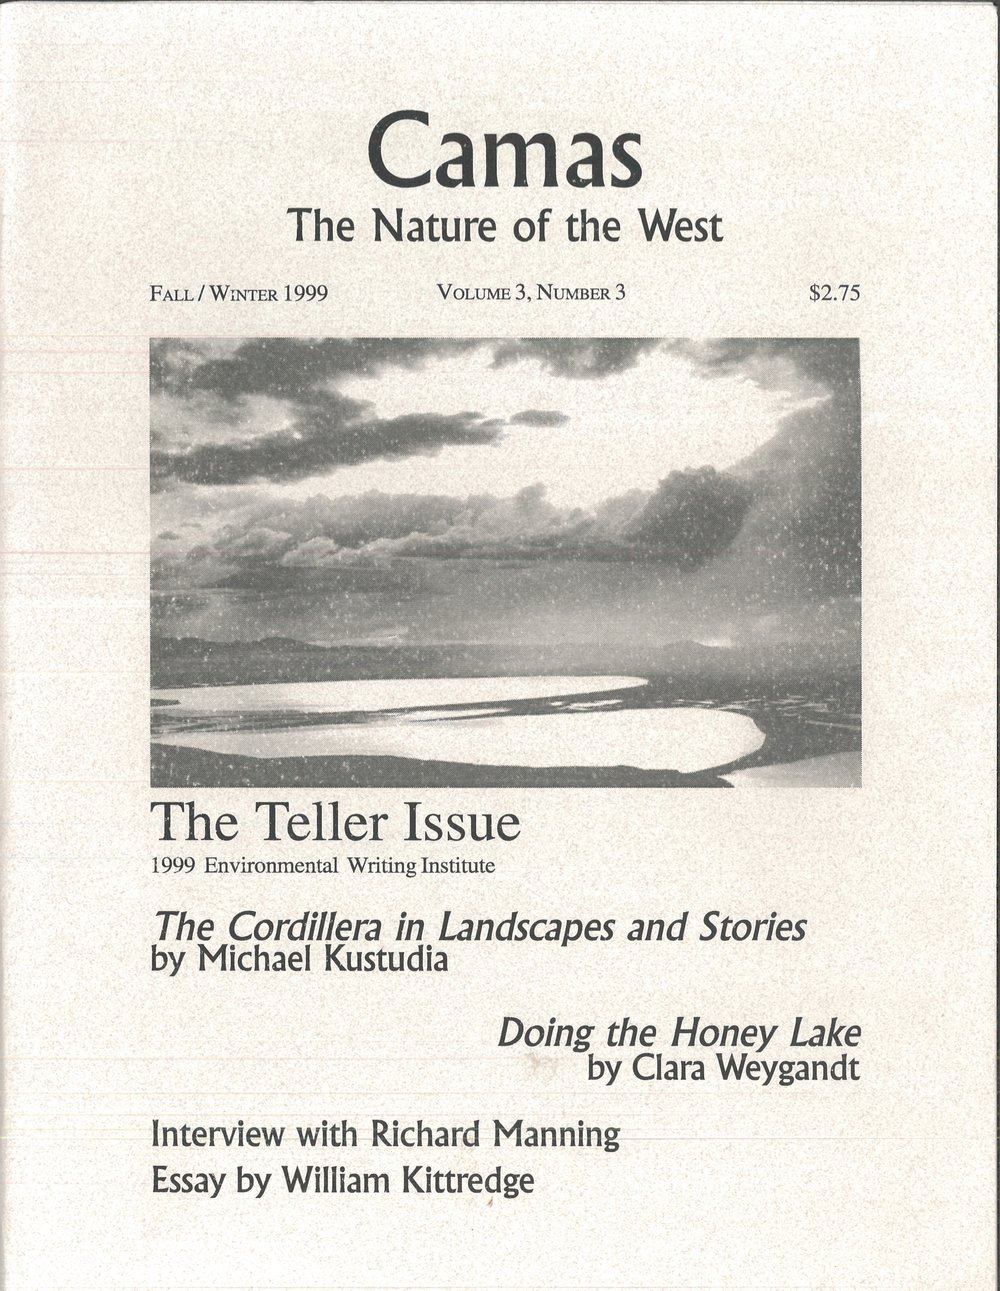 Fall/Winter 1999: The Teller Issue - Featuring essays by William Kittredge, Clara Weygandt, and Michael KustudiaNonfiction by Dan Berger, Mary Anne Peine, and Ethan HasensteinA profile of Richard Manning by Anne WhitesidesPoetry by Allison Kreiss, Ken White, and Elise Schemm